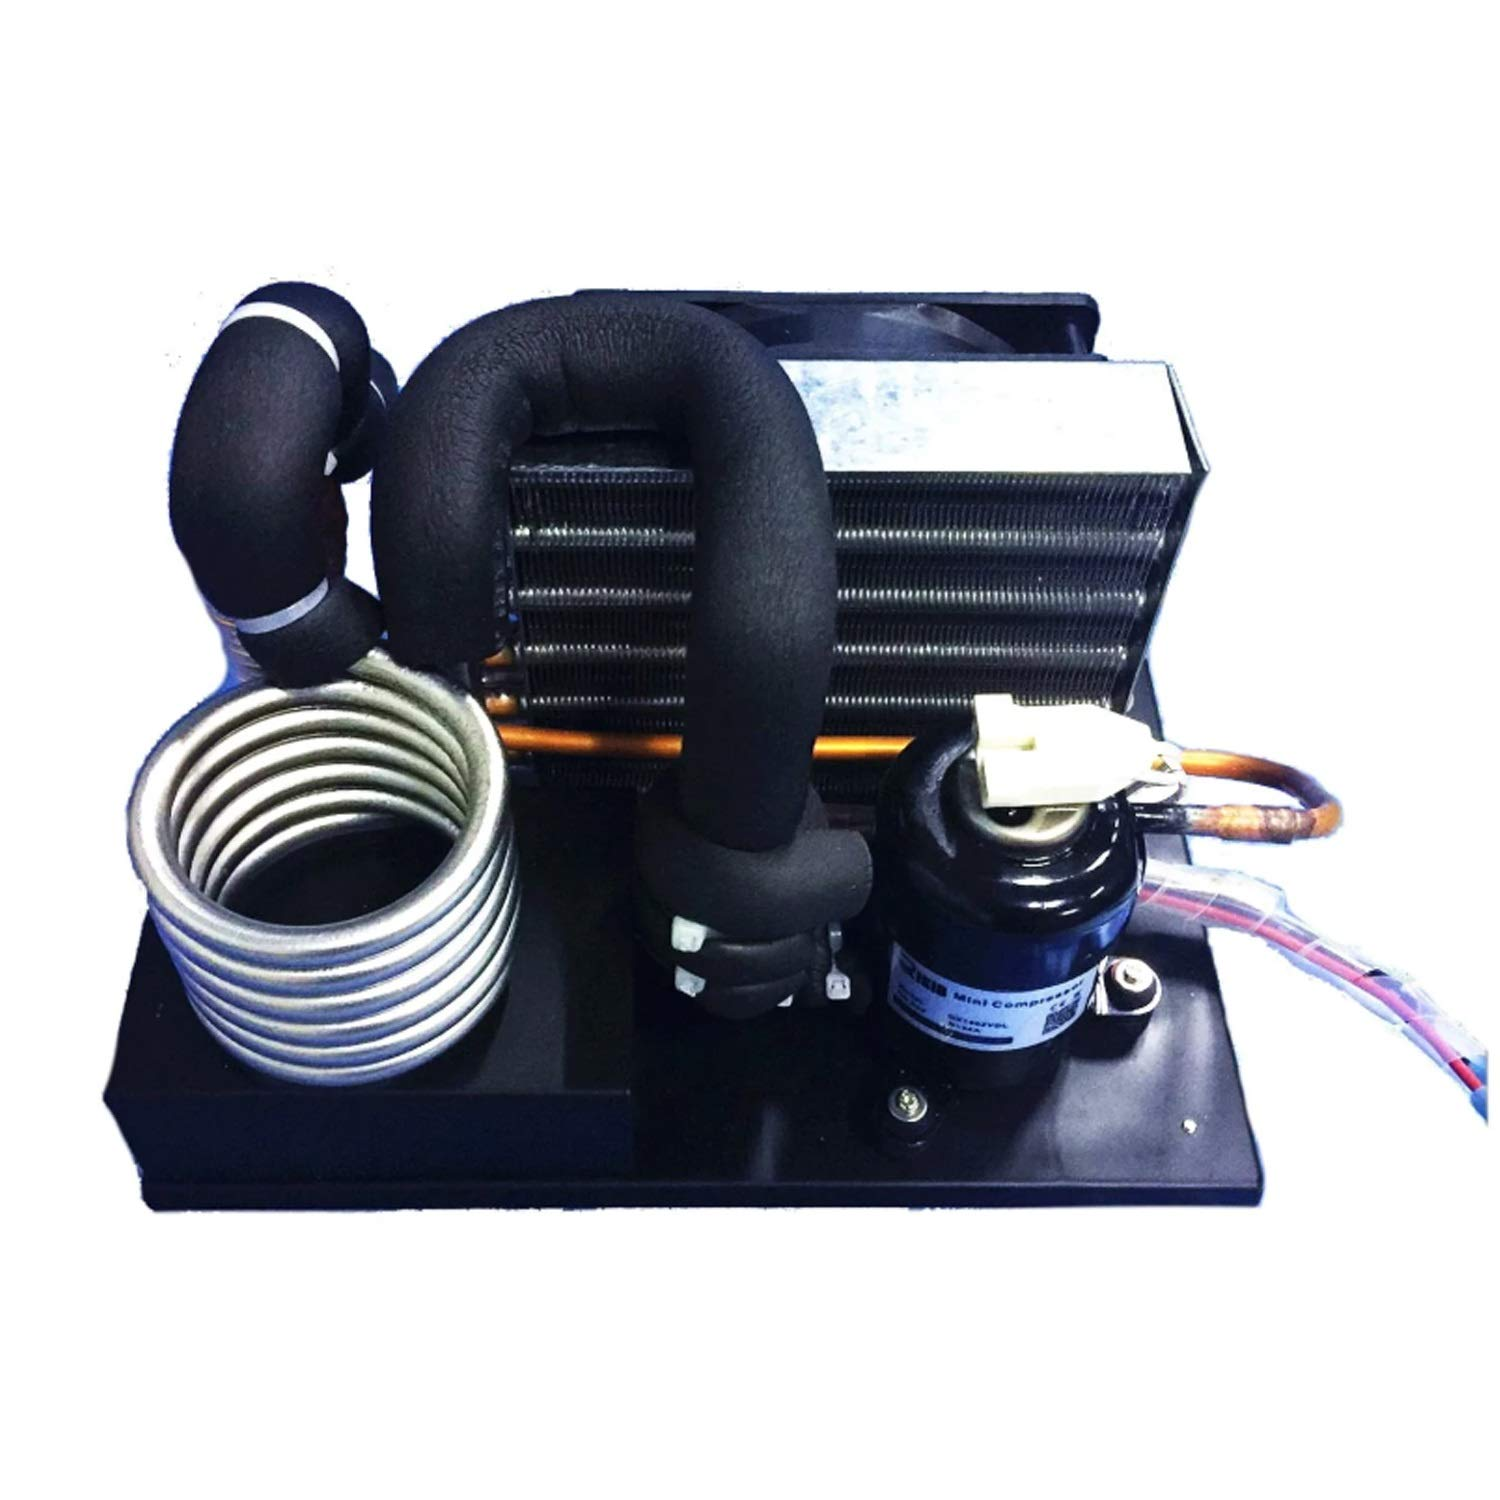 Portable cooling system Compact Refrigeration Unit DC24V 125~400W Cooler Module,Portable Stianless Steel Coil S-Type Liquid Chiller R134A Refrigerant Miniature Water Cycle Refrigeration small cooling